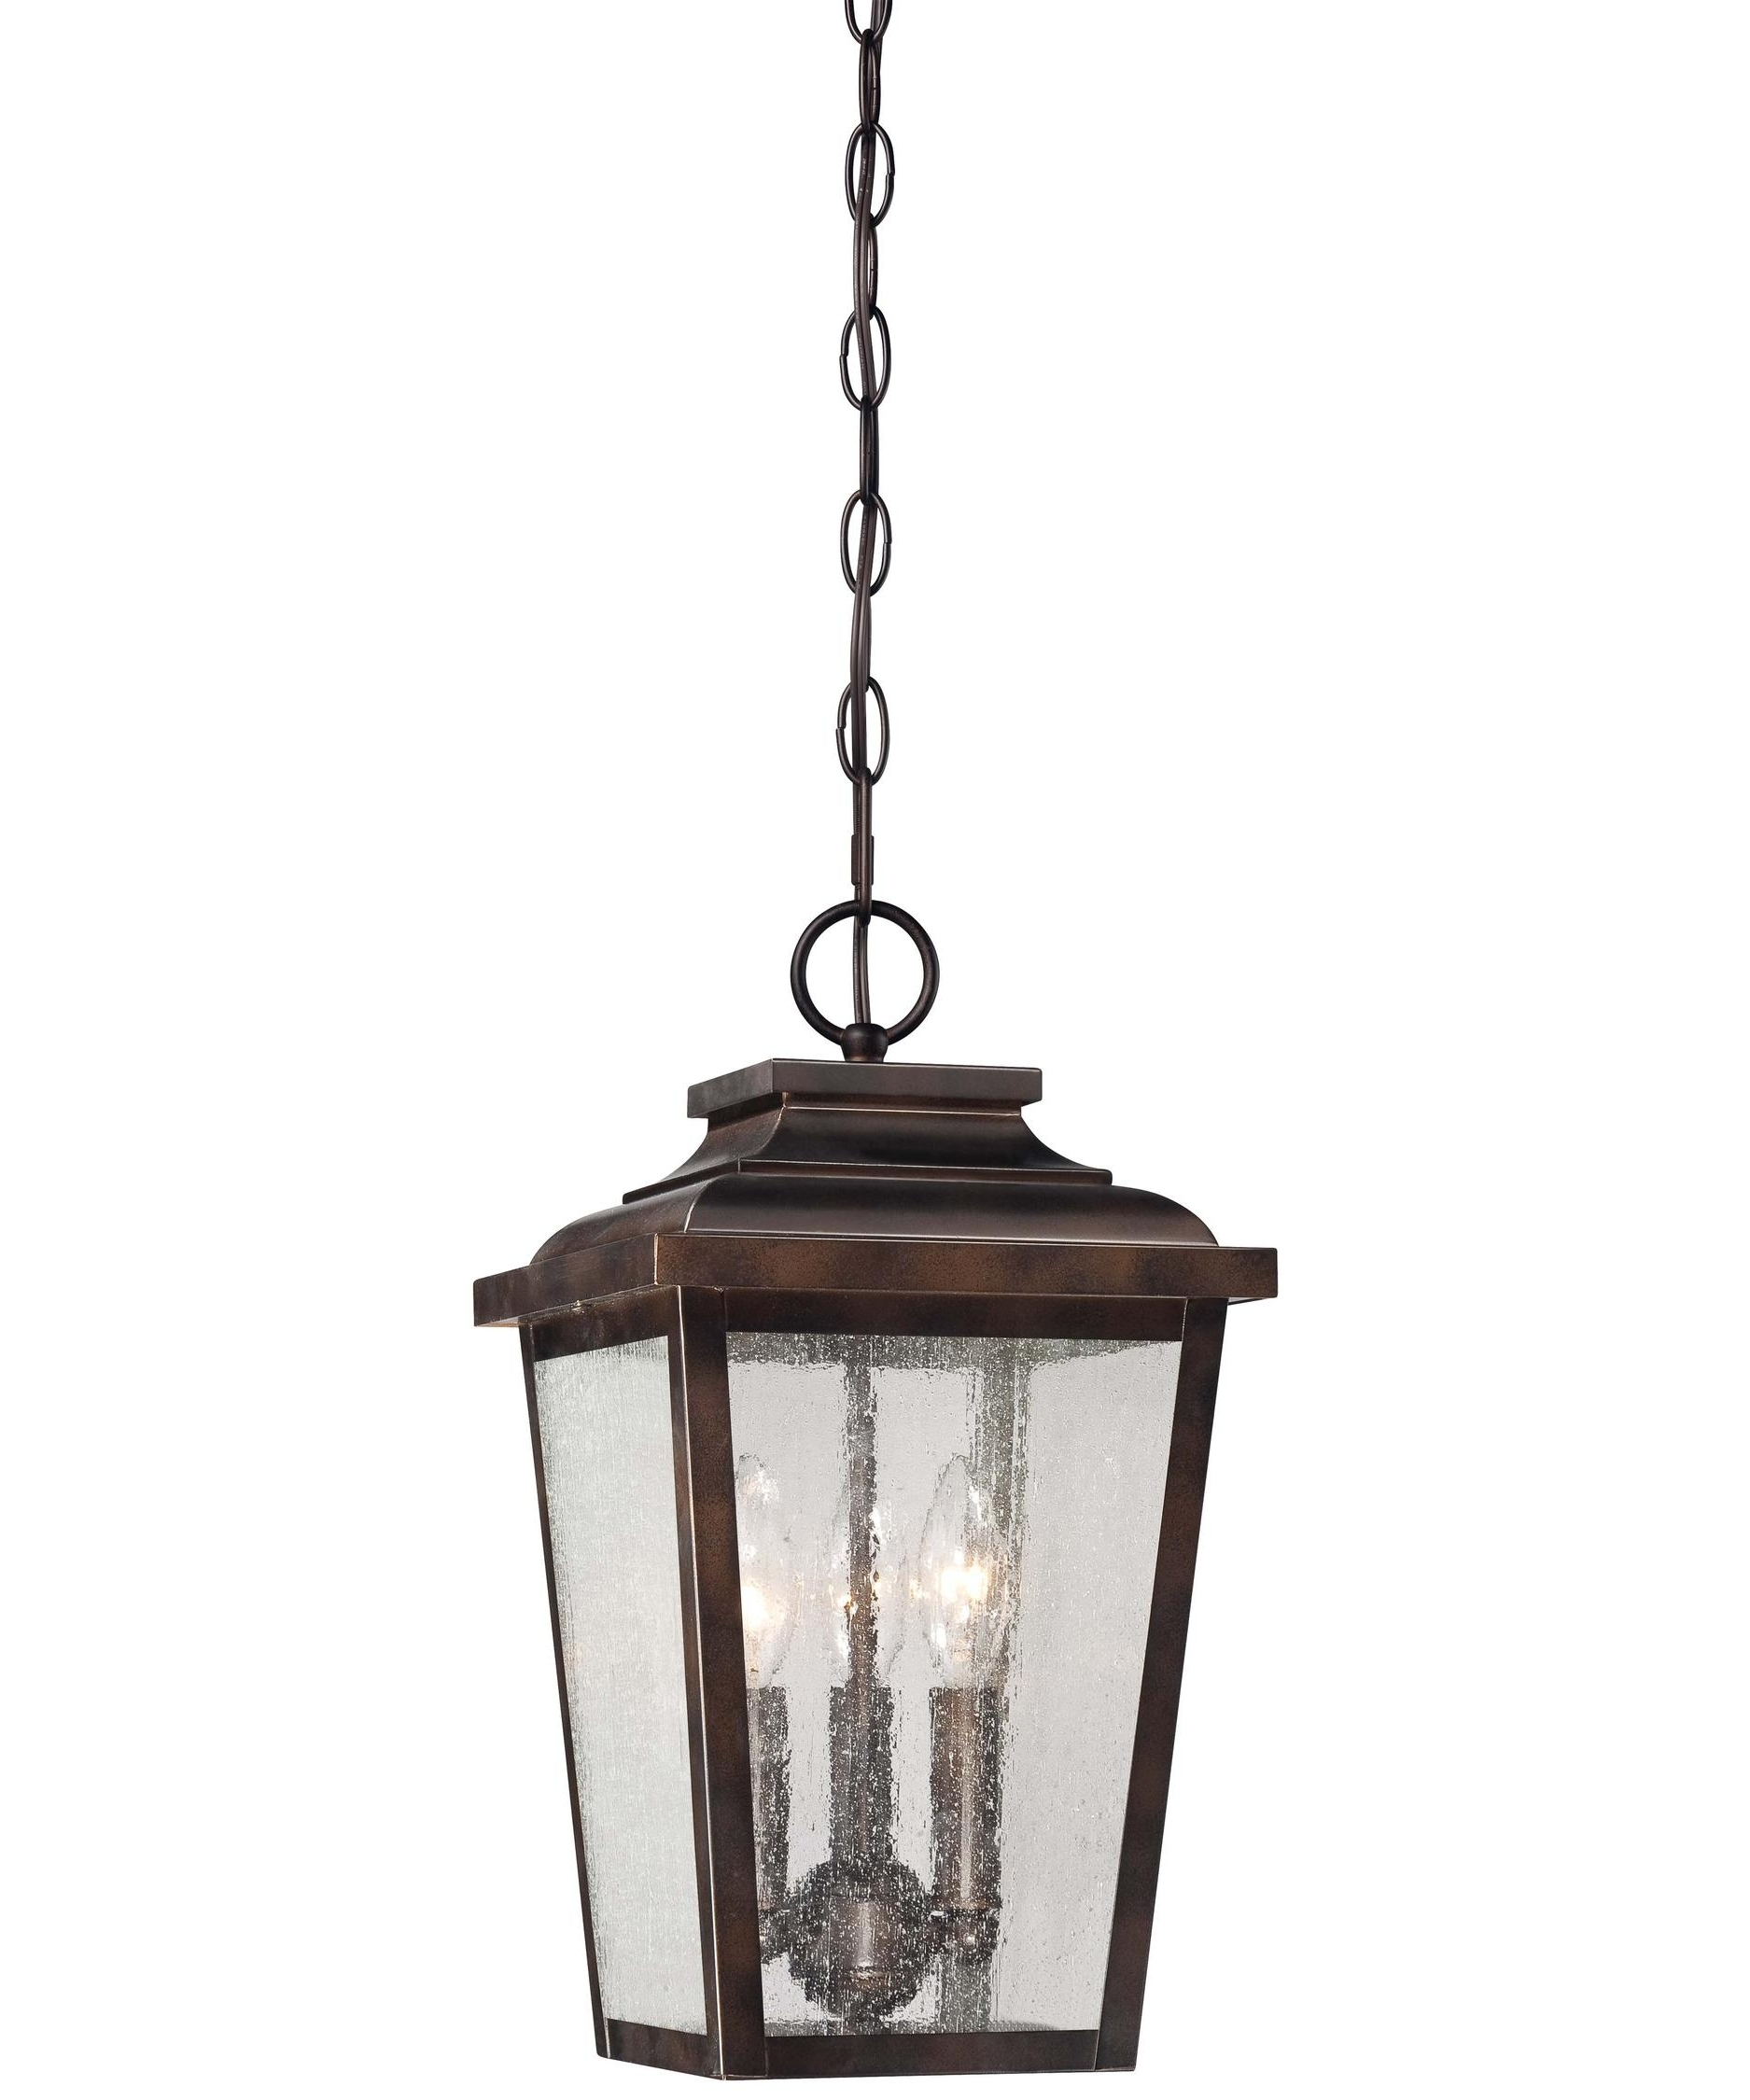 Marvelous Outdoor Pendant Lighting In House Decor Inspiration Pertaining To Favorite Outdoor Hanging Lights From Australia (View 10 of 20)